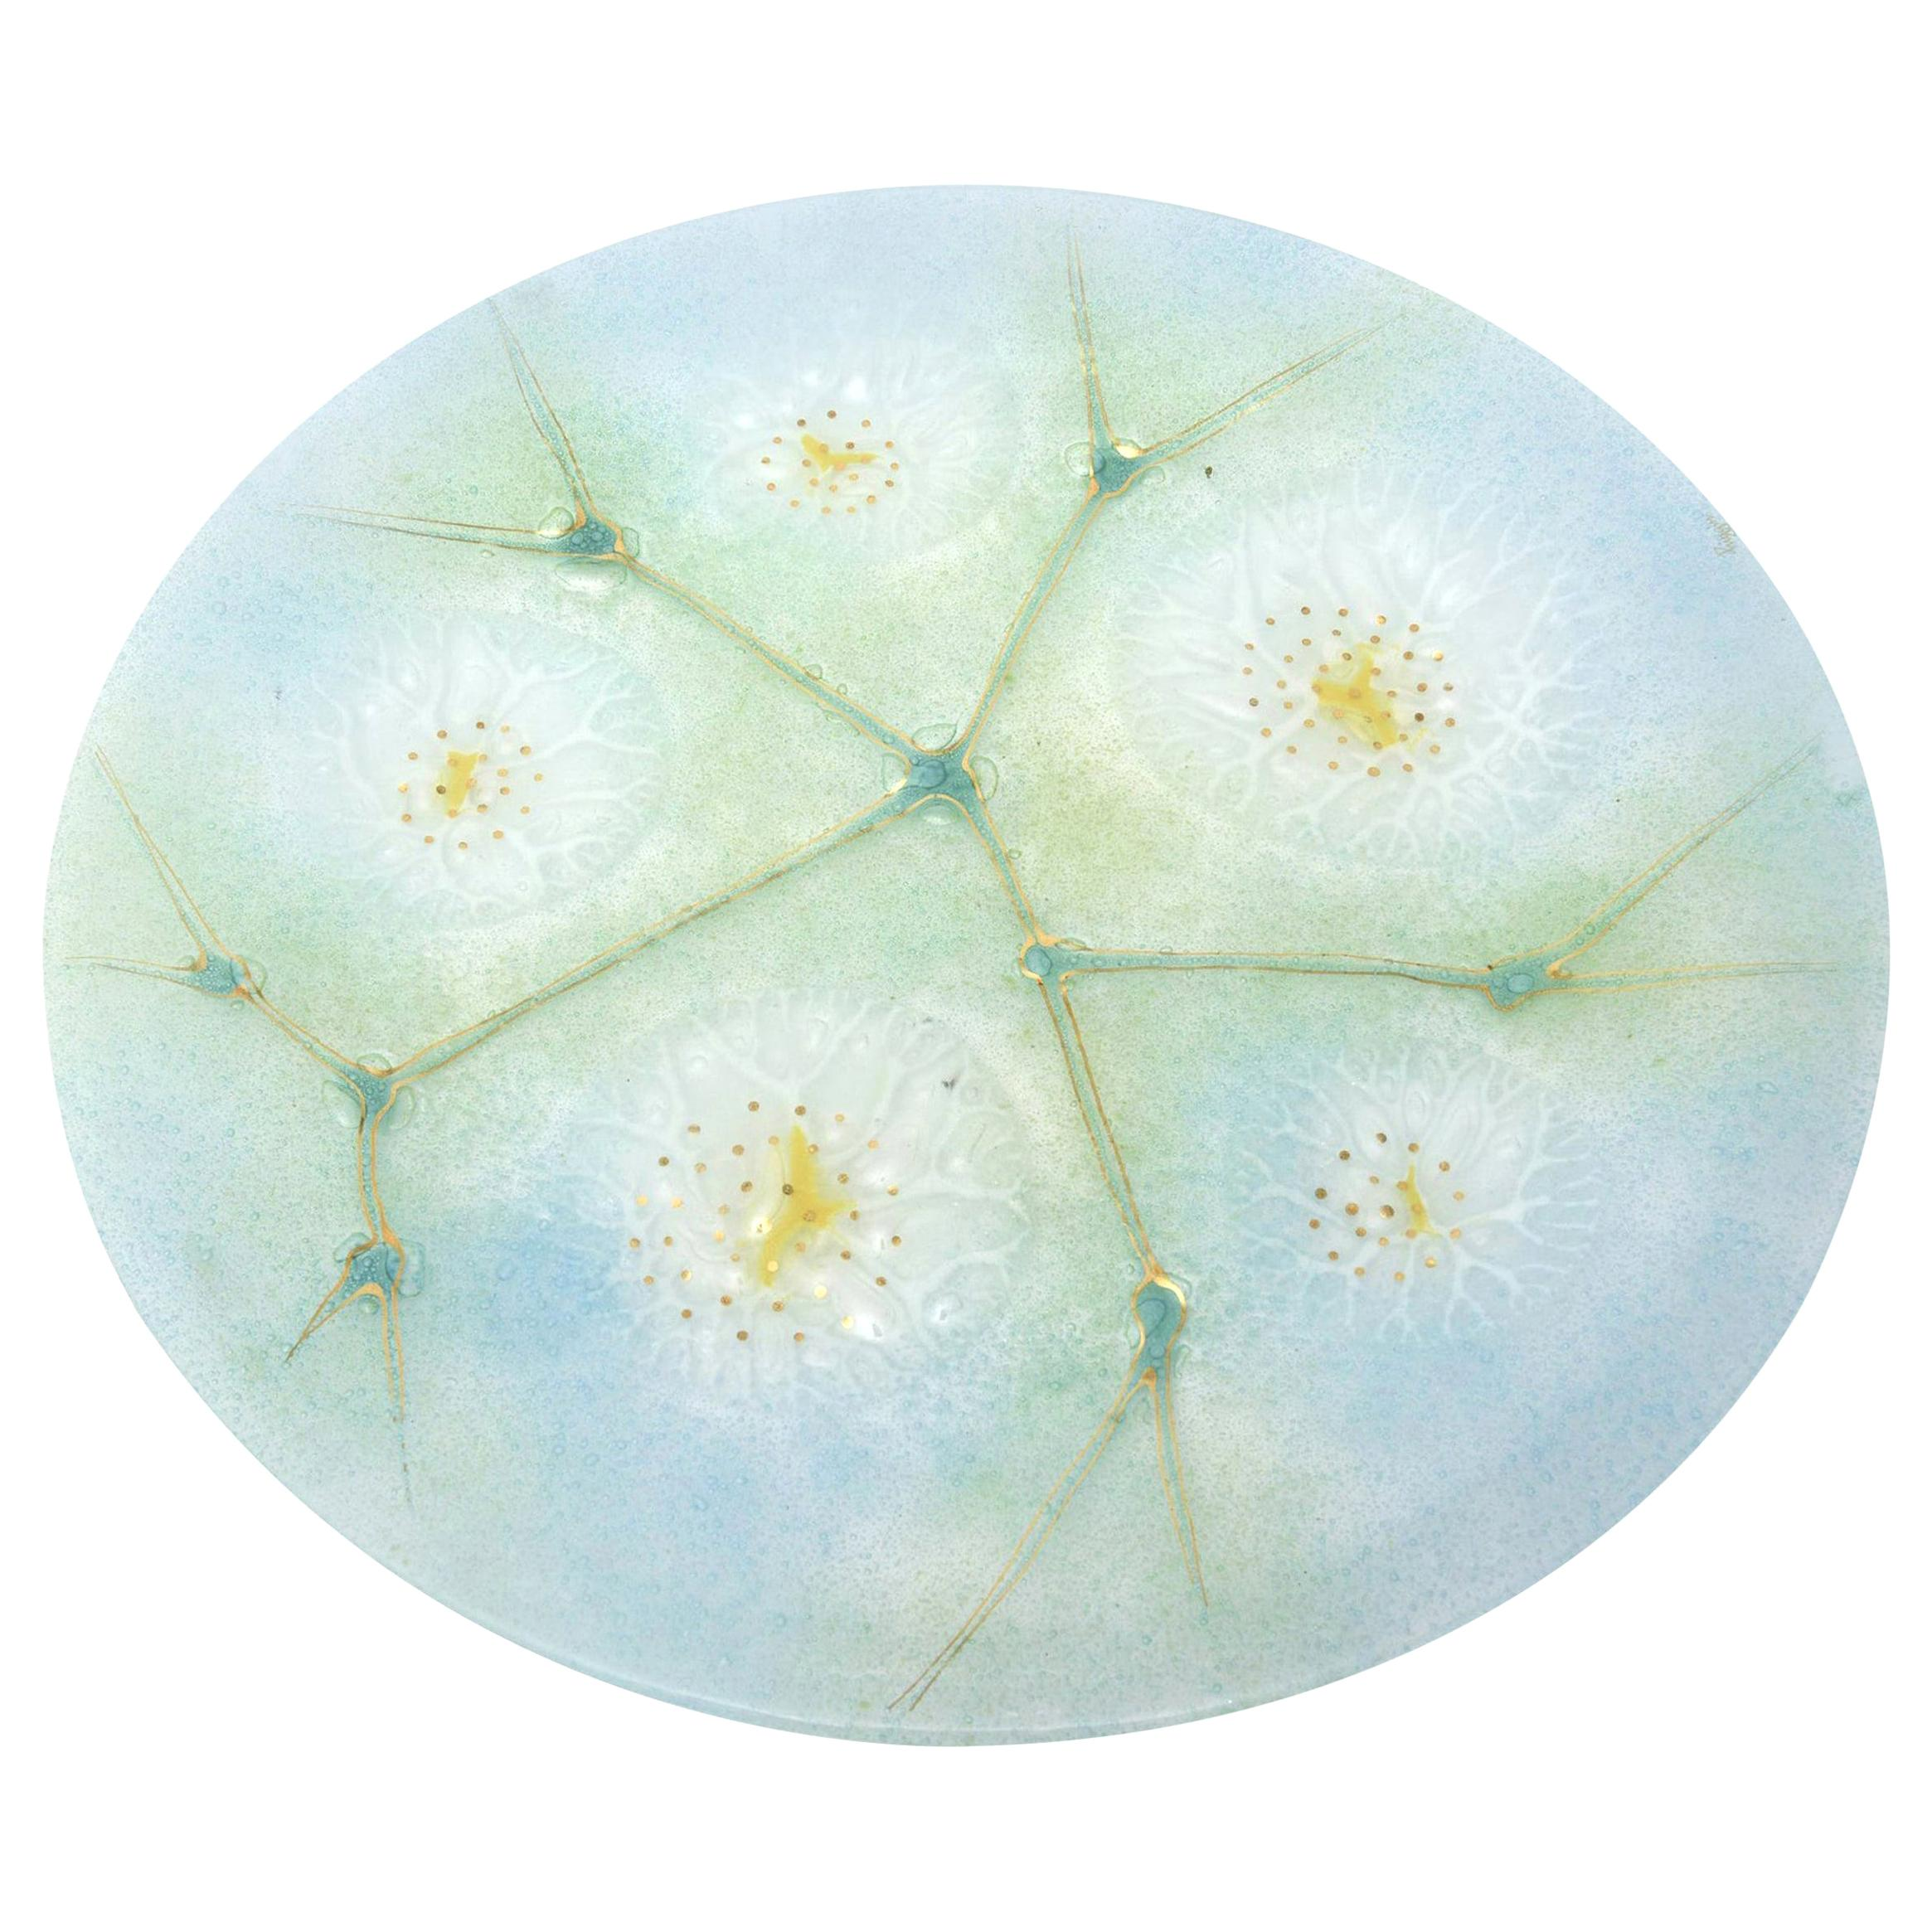 Higgins Fused Turquoise Gold, White, Green Glass Platter or Charger Vintage